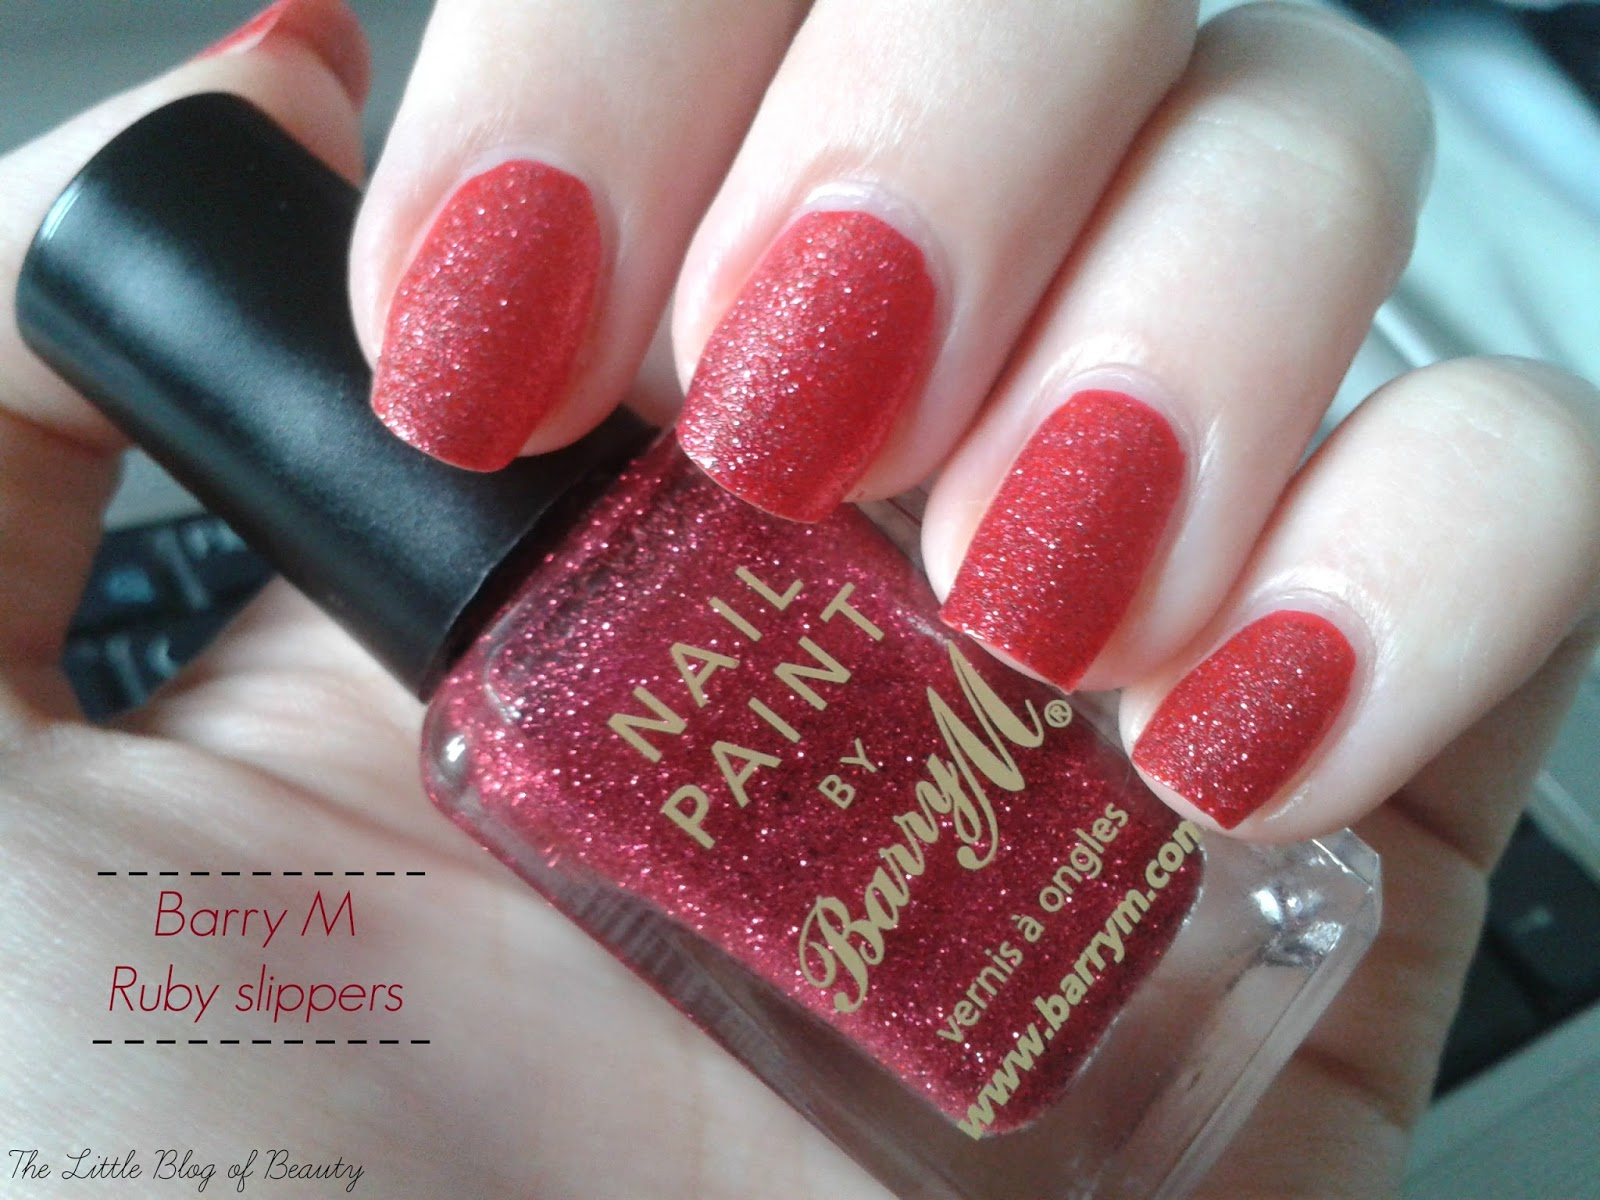 Barry M Ruby slippers (more ruby coloured than this shows!)